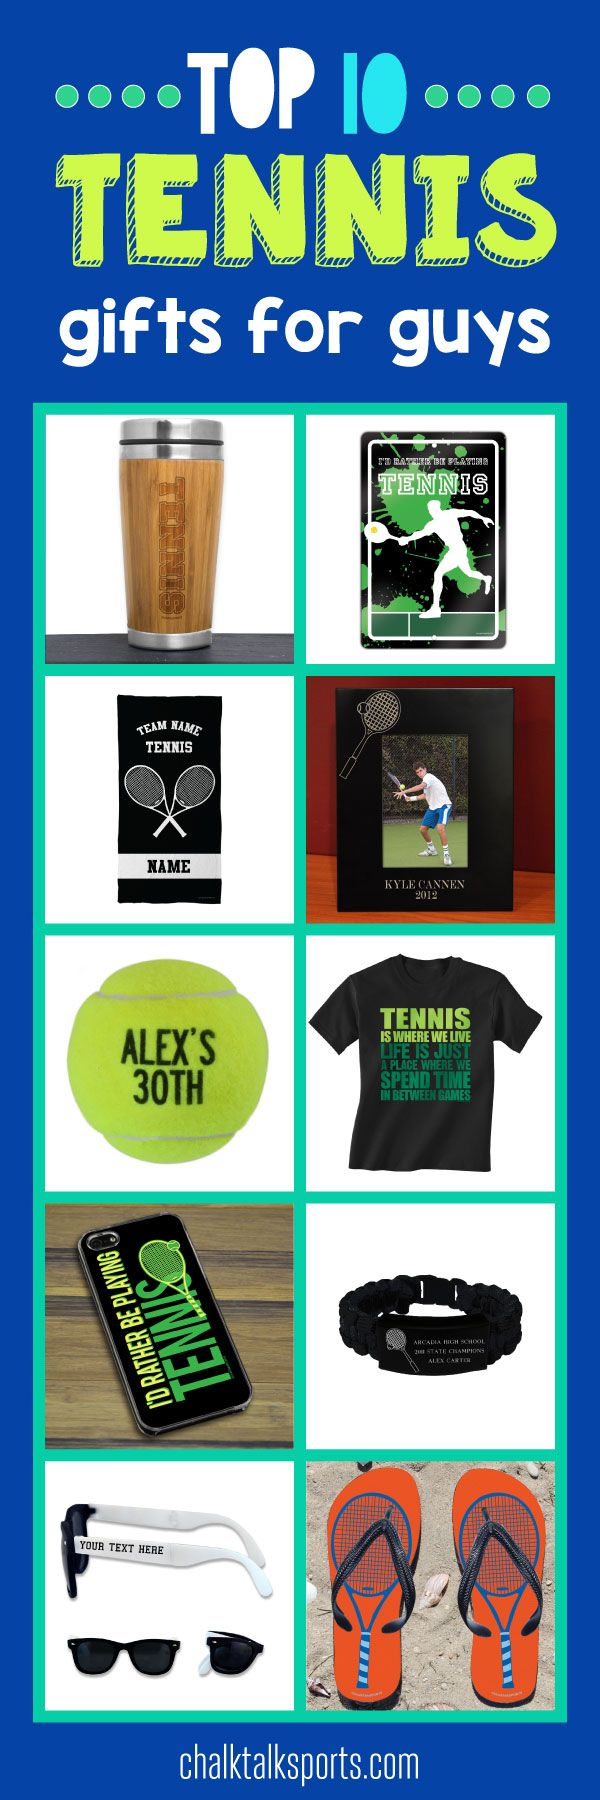 Top 10 tennis gift ideas for guys: Perfect gift ideas for holidays, special occasions, and end of season gifts! These products are made-to-order and can be personalized with your team and tennis player's info! From custom flip flops to personalized beach towels, there are so many products to choose from at ChalkTalkSPORTS.com!